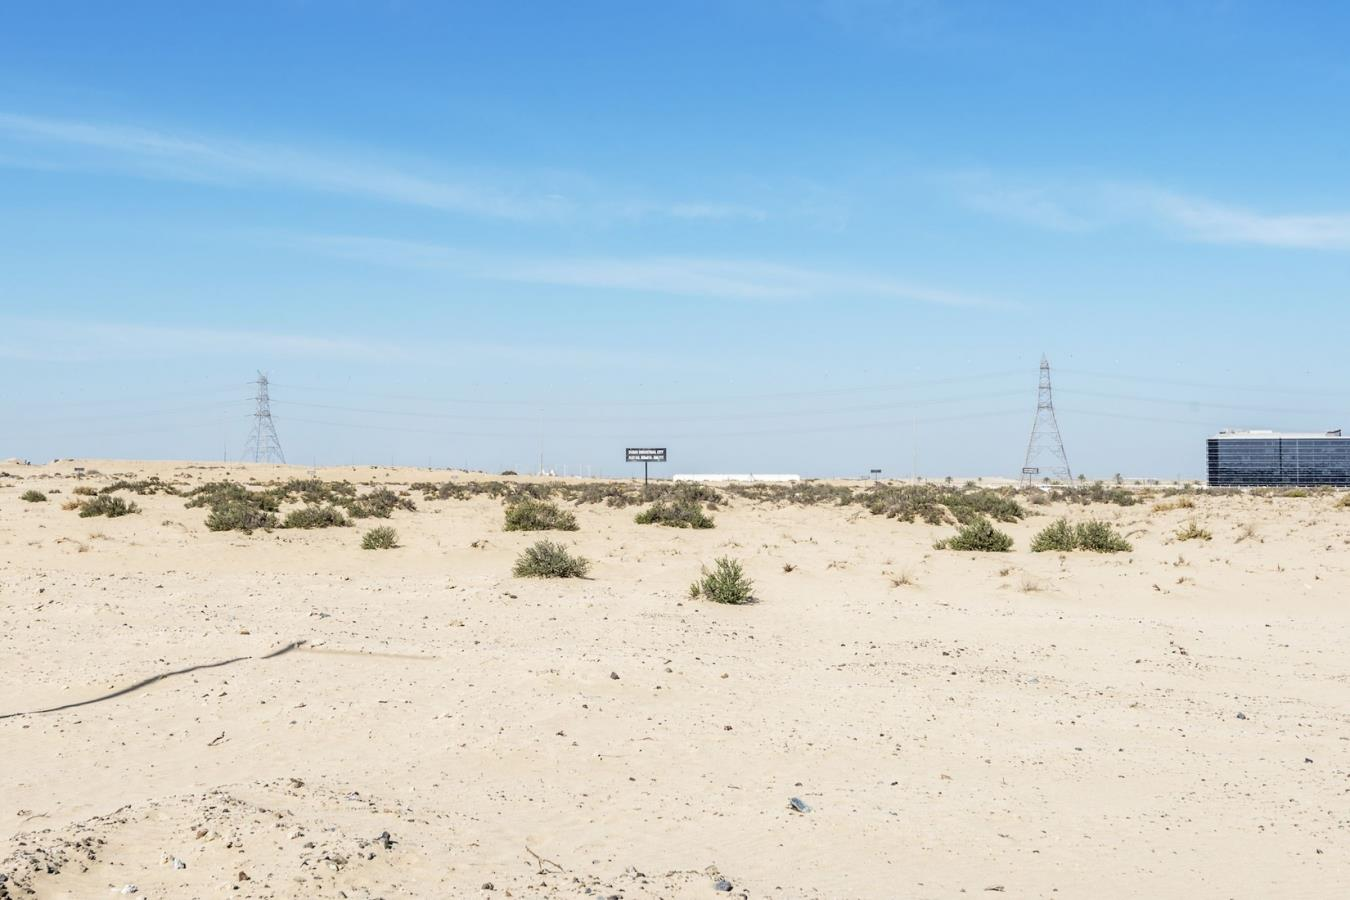 Cheapest Land in DIC at 44 AED per Sq. Ft.